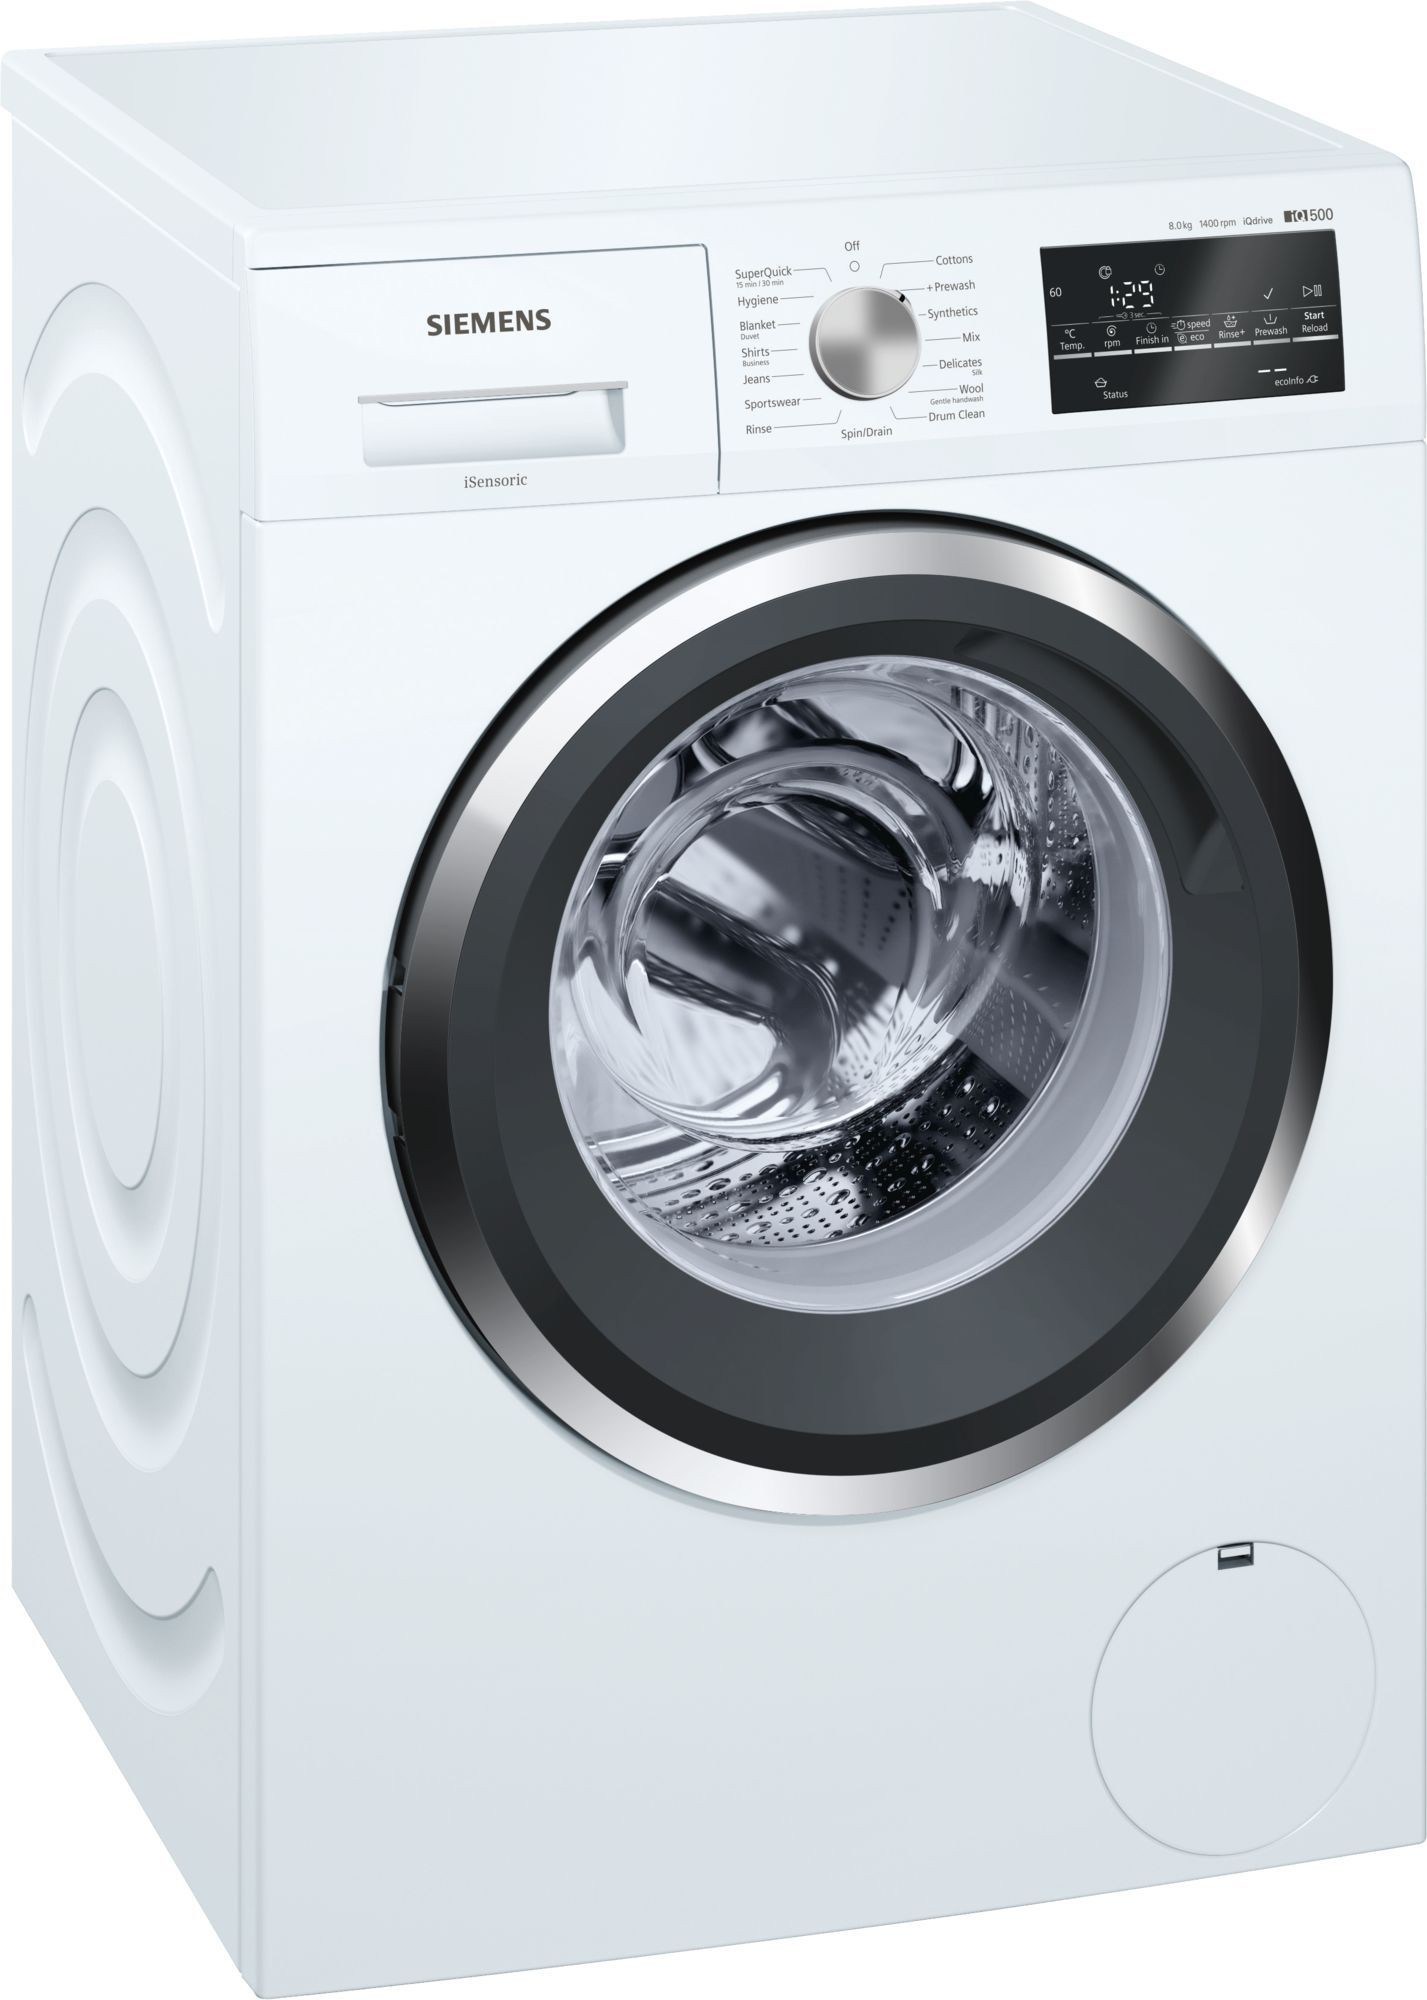 Siemens 8 kg Fully Automatic Front Load Washing Machine WM14T461IN Image